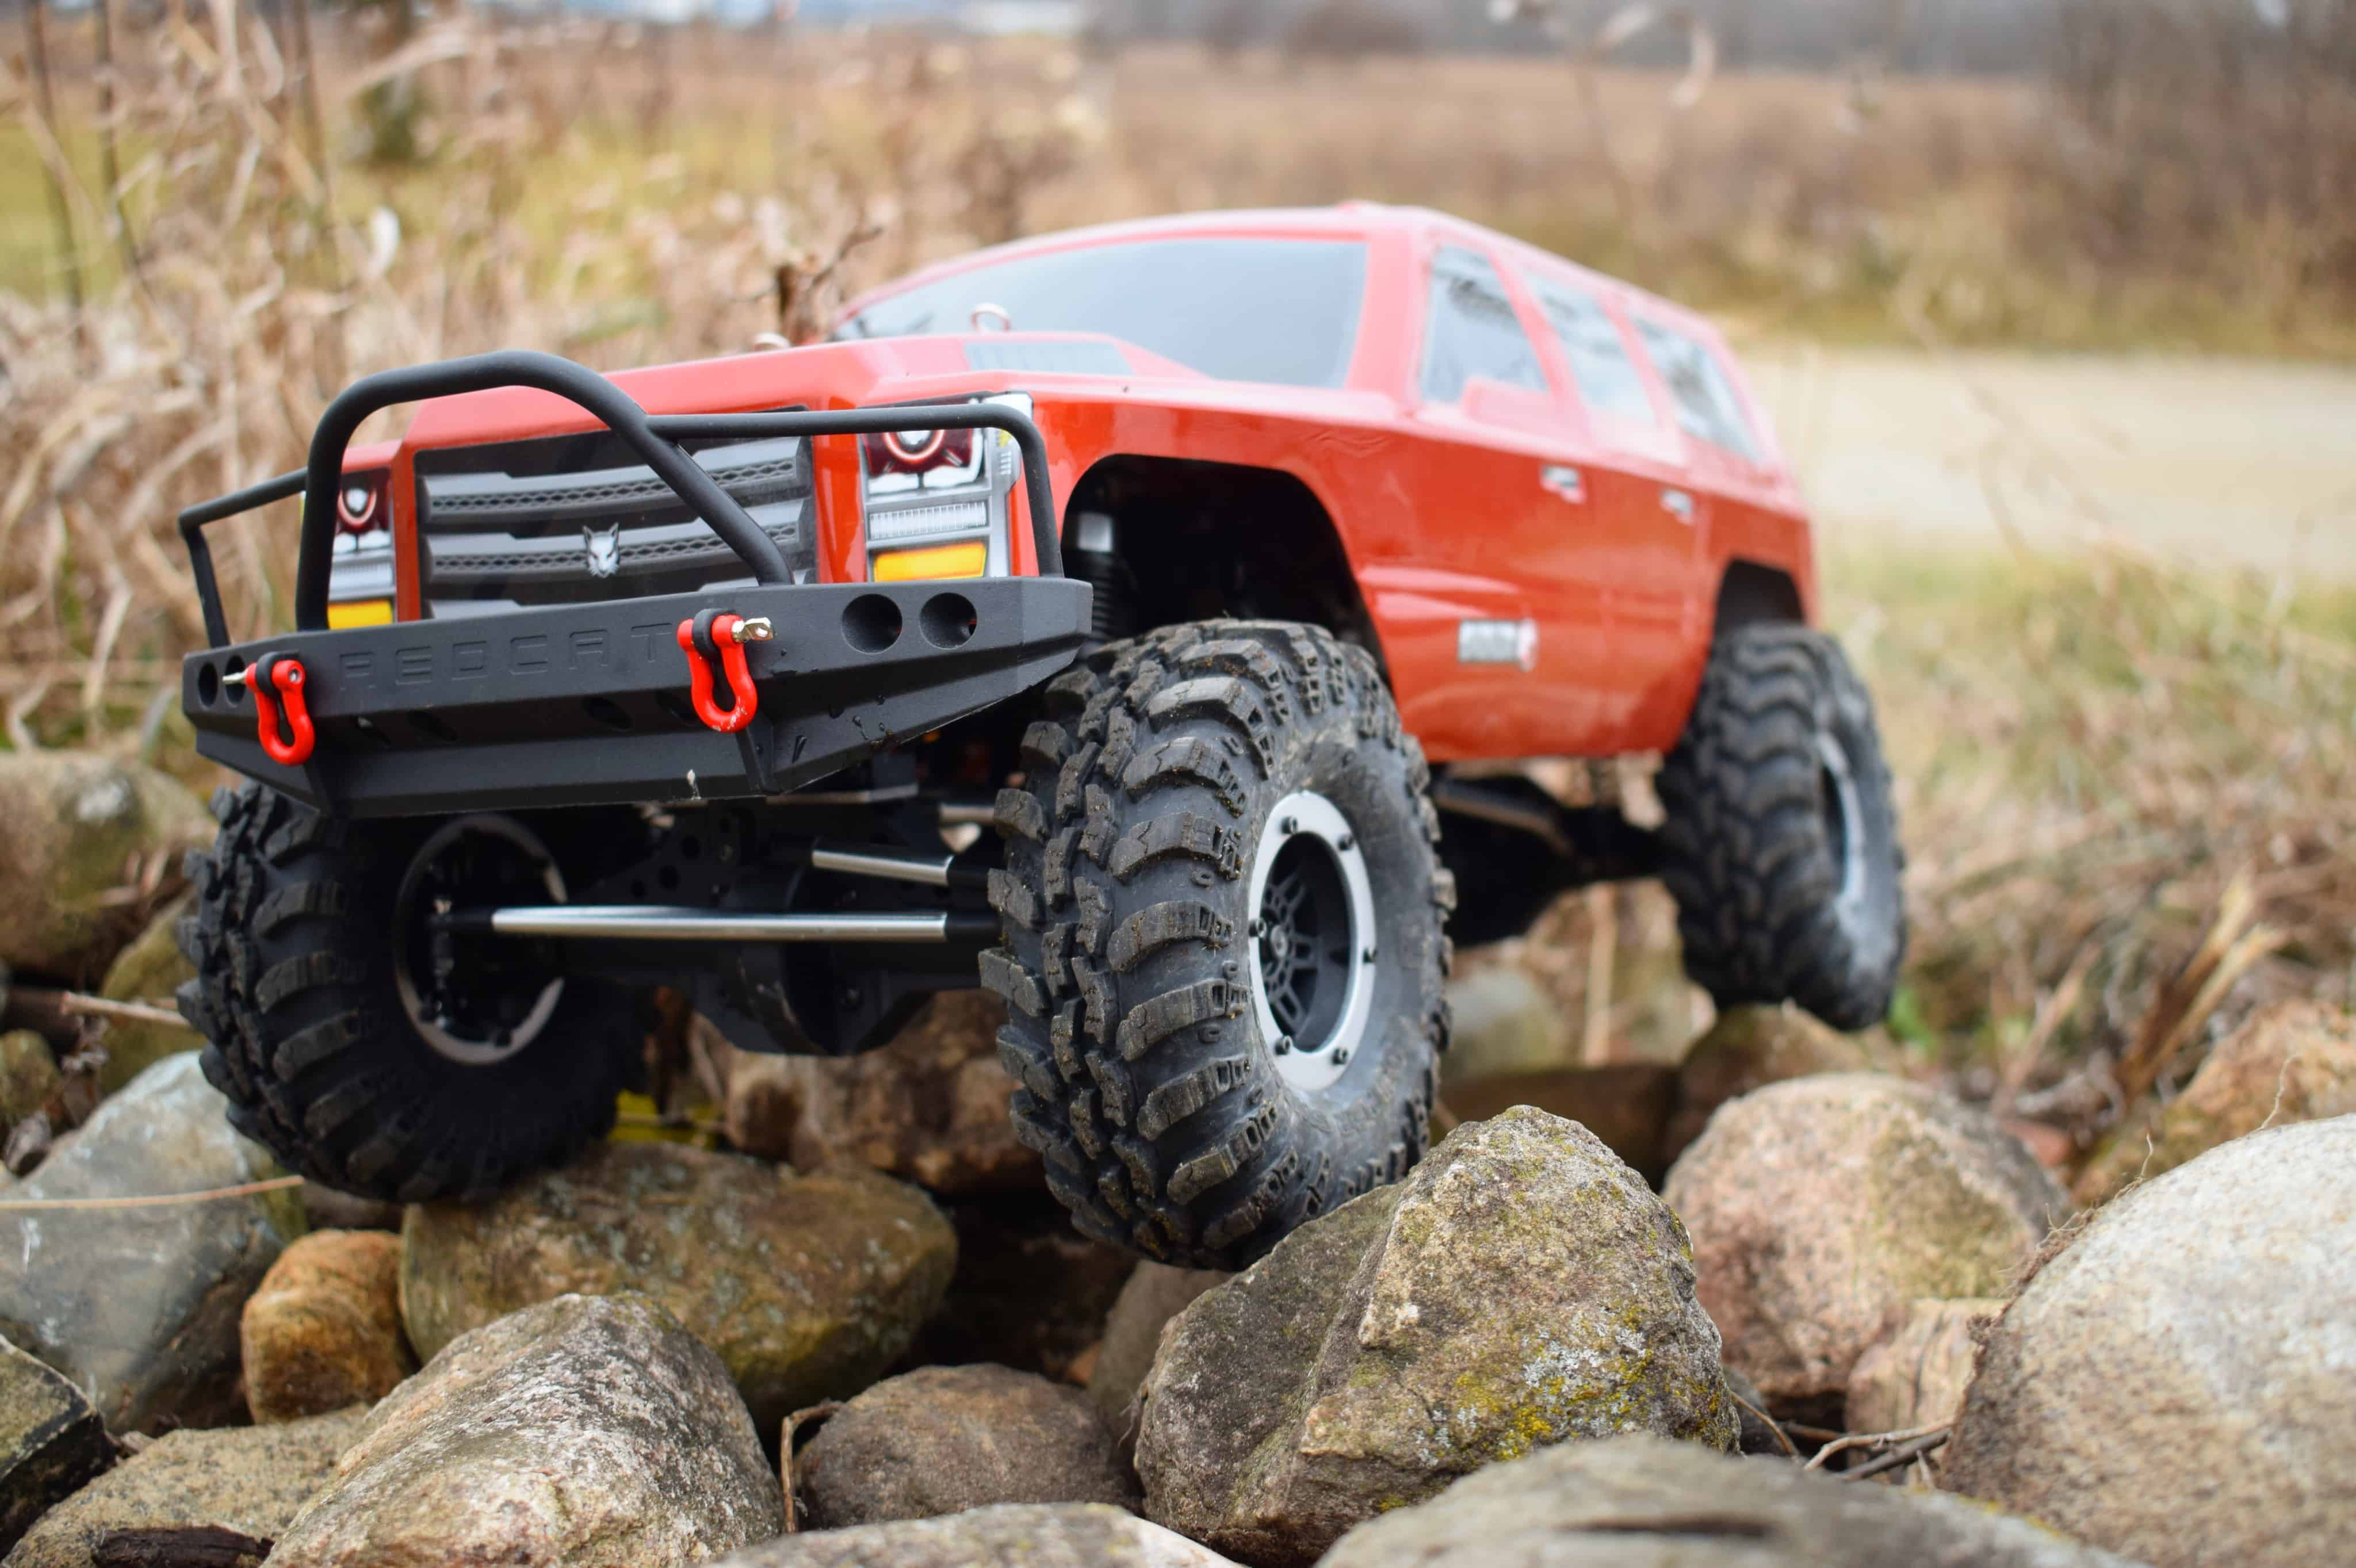 A Redcat on the Rocks [Video]